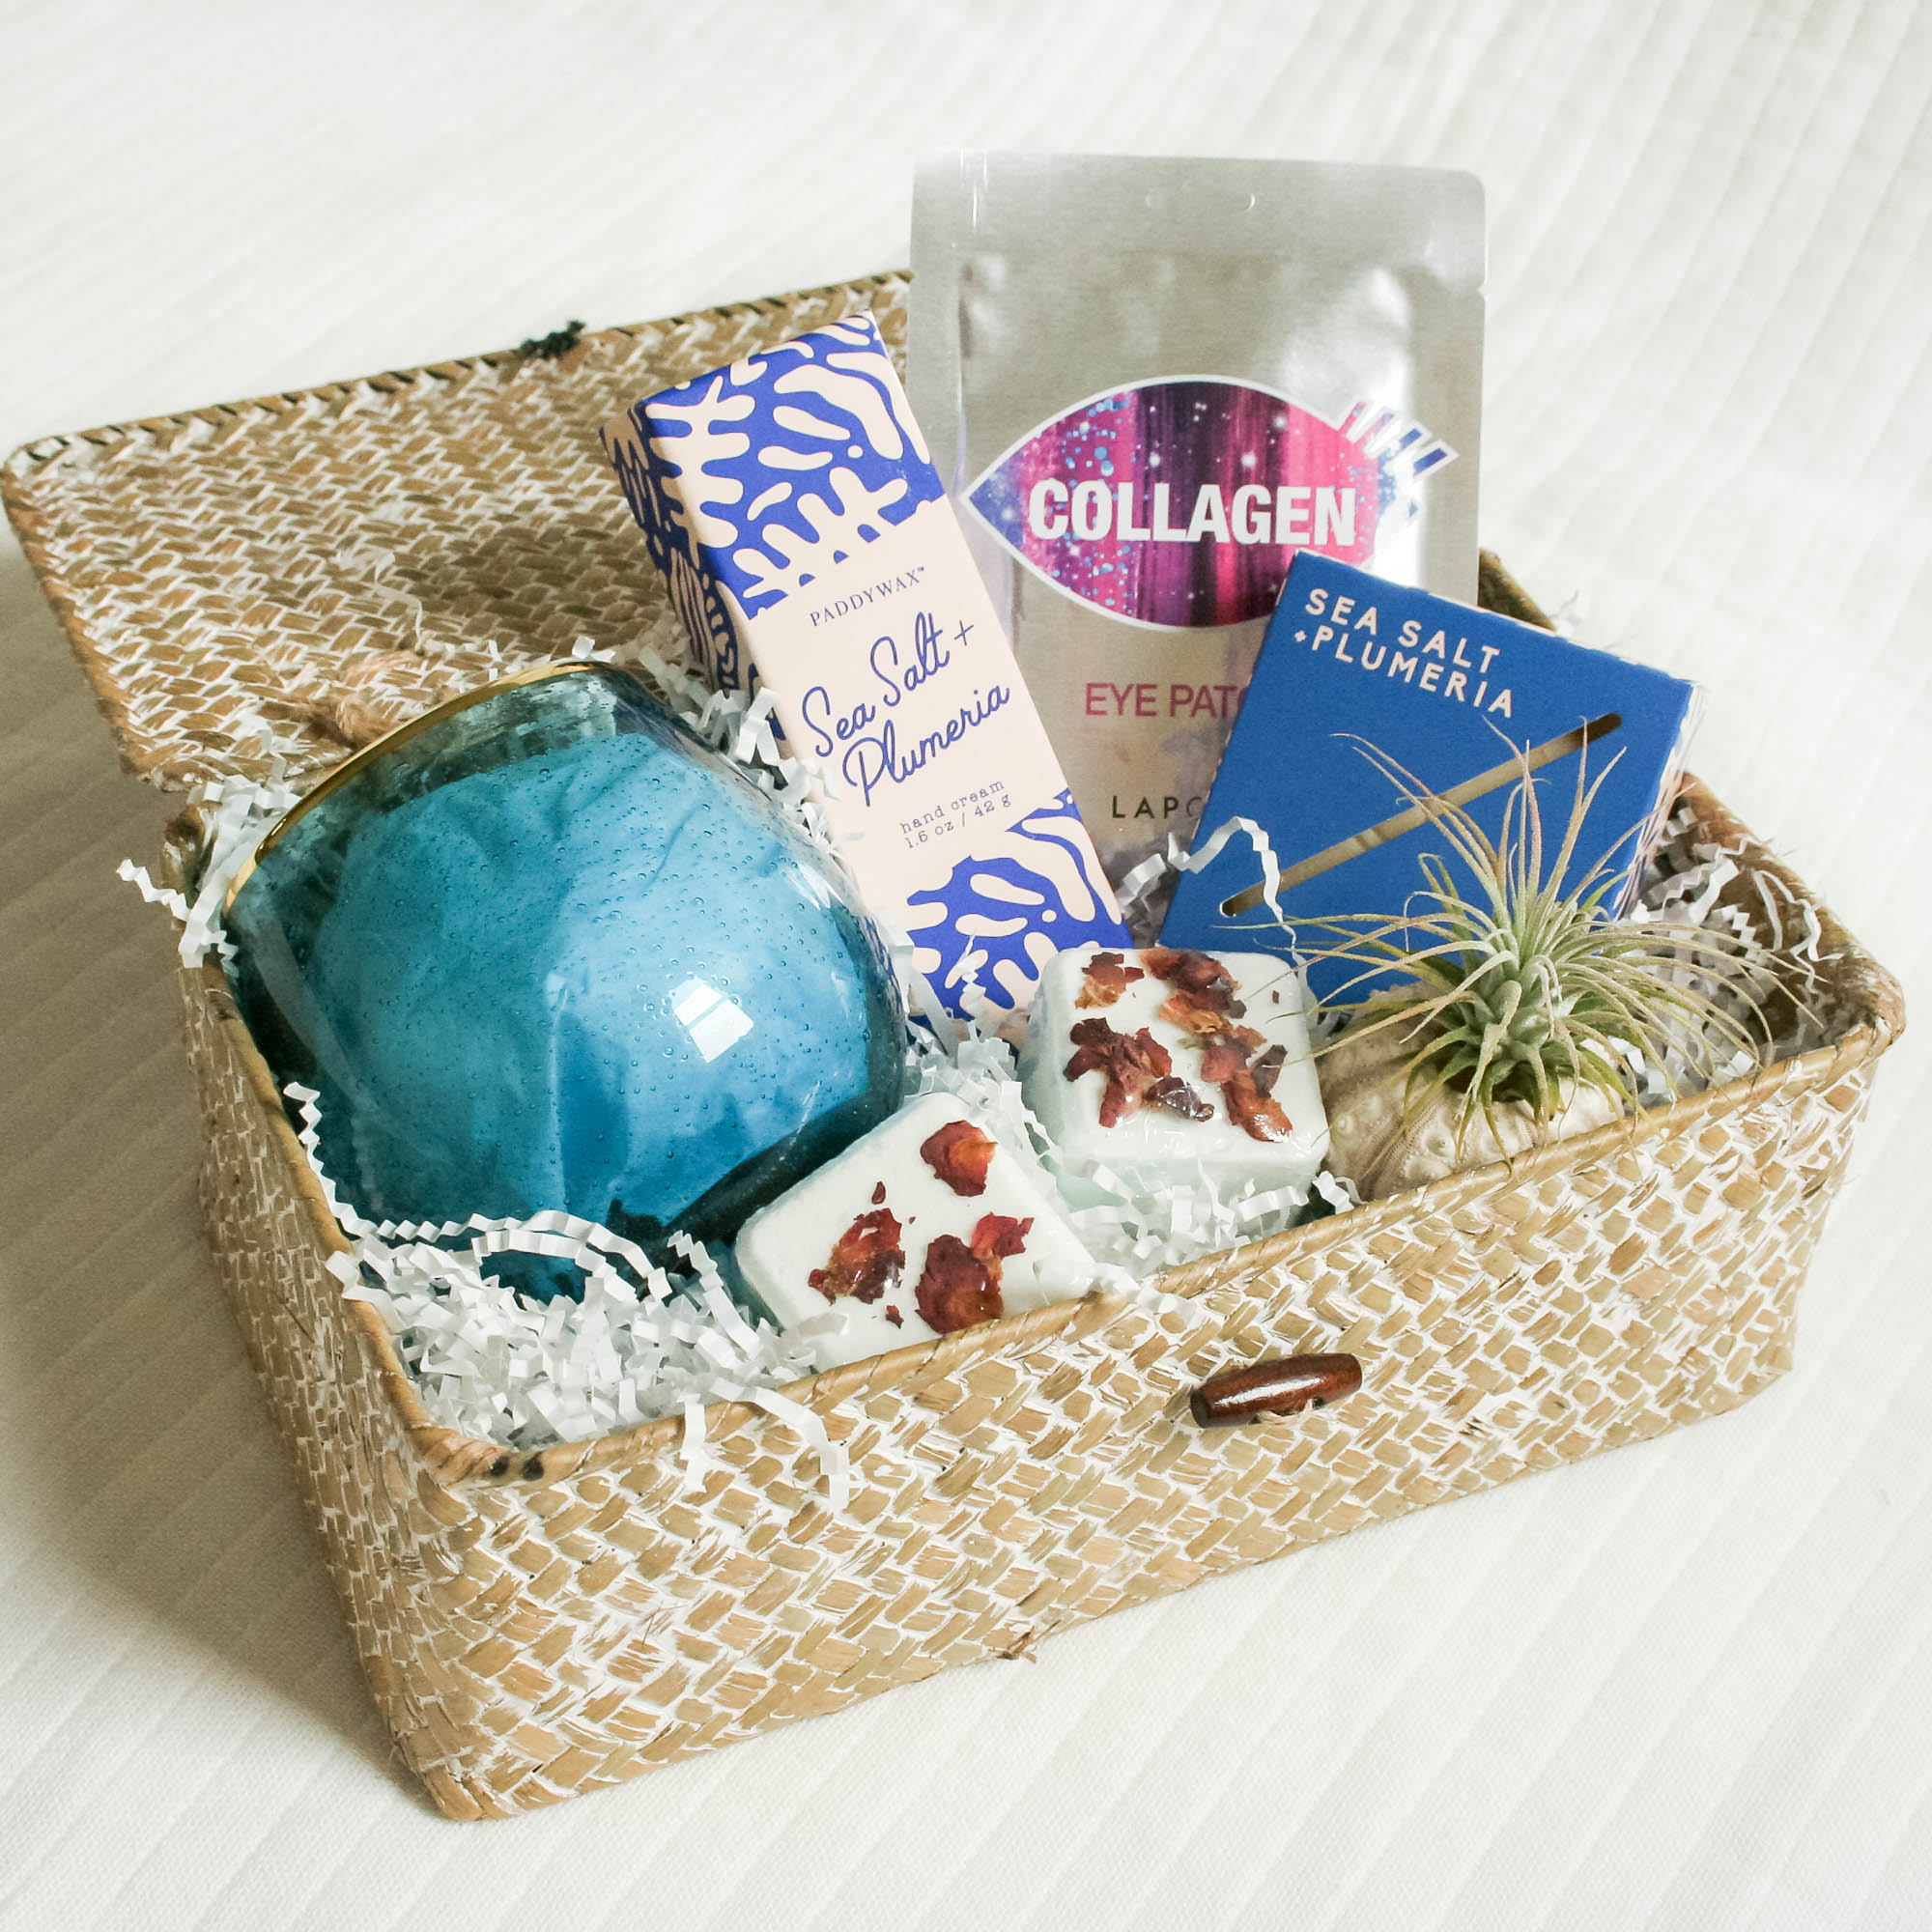 From bath salts to body spray that all smell like the ocean, this is a wonderful basket for someone who deserves some time alone to relax and unwind.